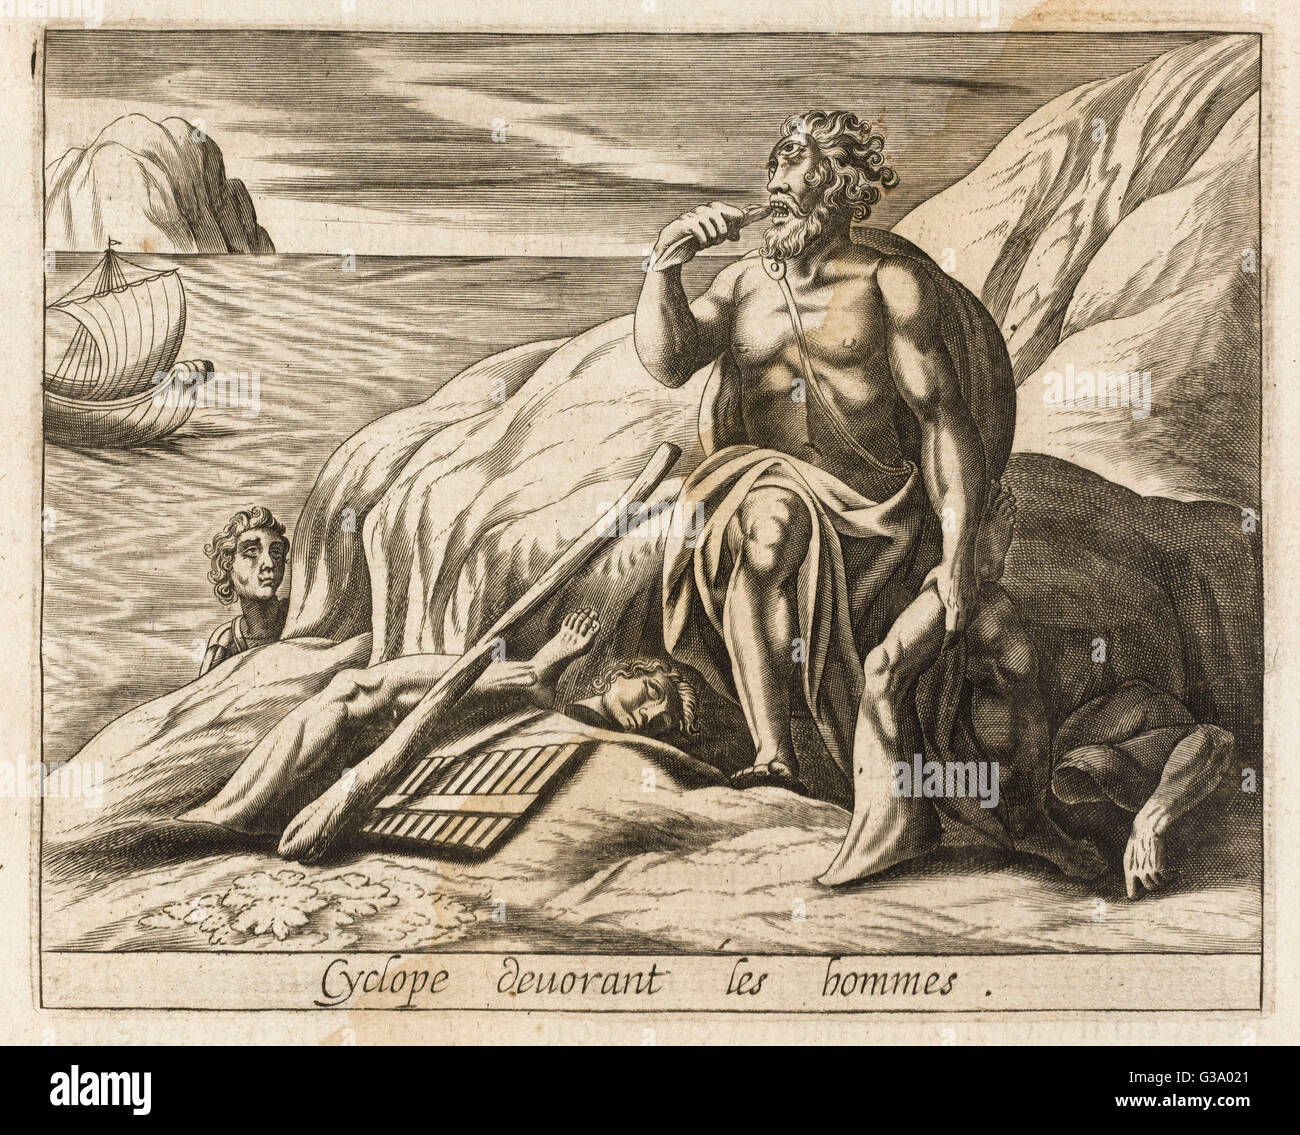 the-cyclops-polyphemus-eating-people-G3A